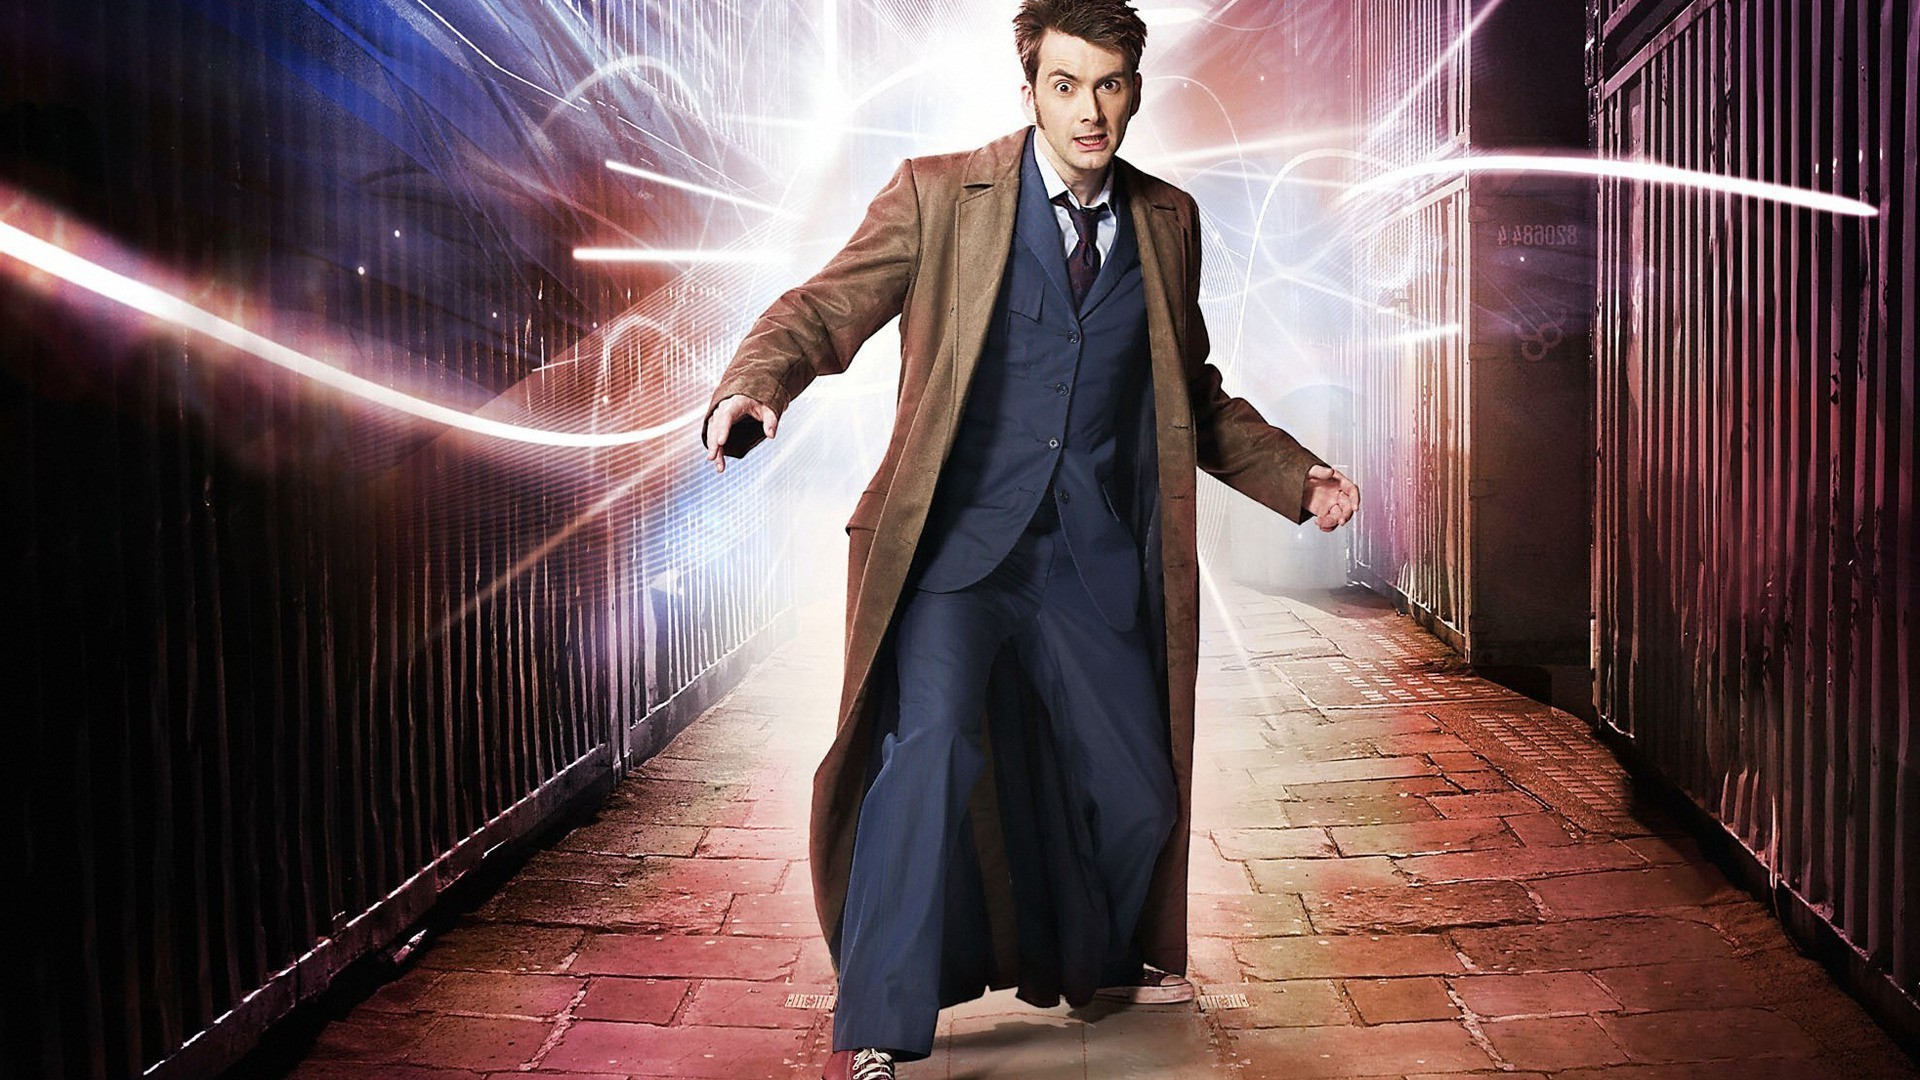 Doctor Who, The Doctor, David Tennant, Tenth Doctor Wallpapers HD / Desktop  and Mobile Backgrounds